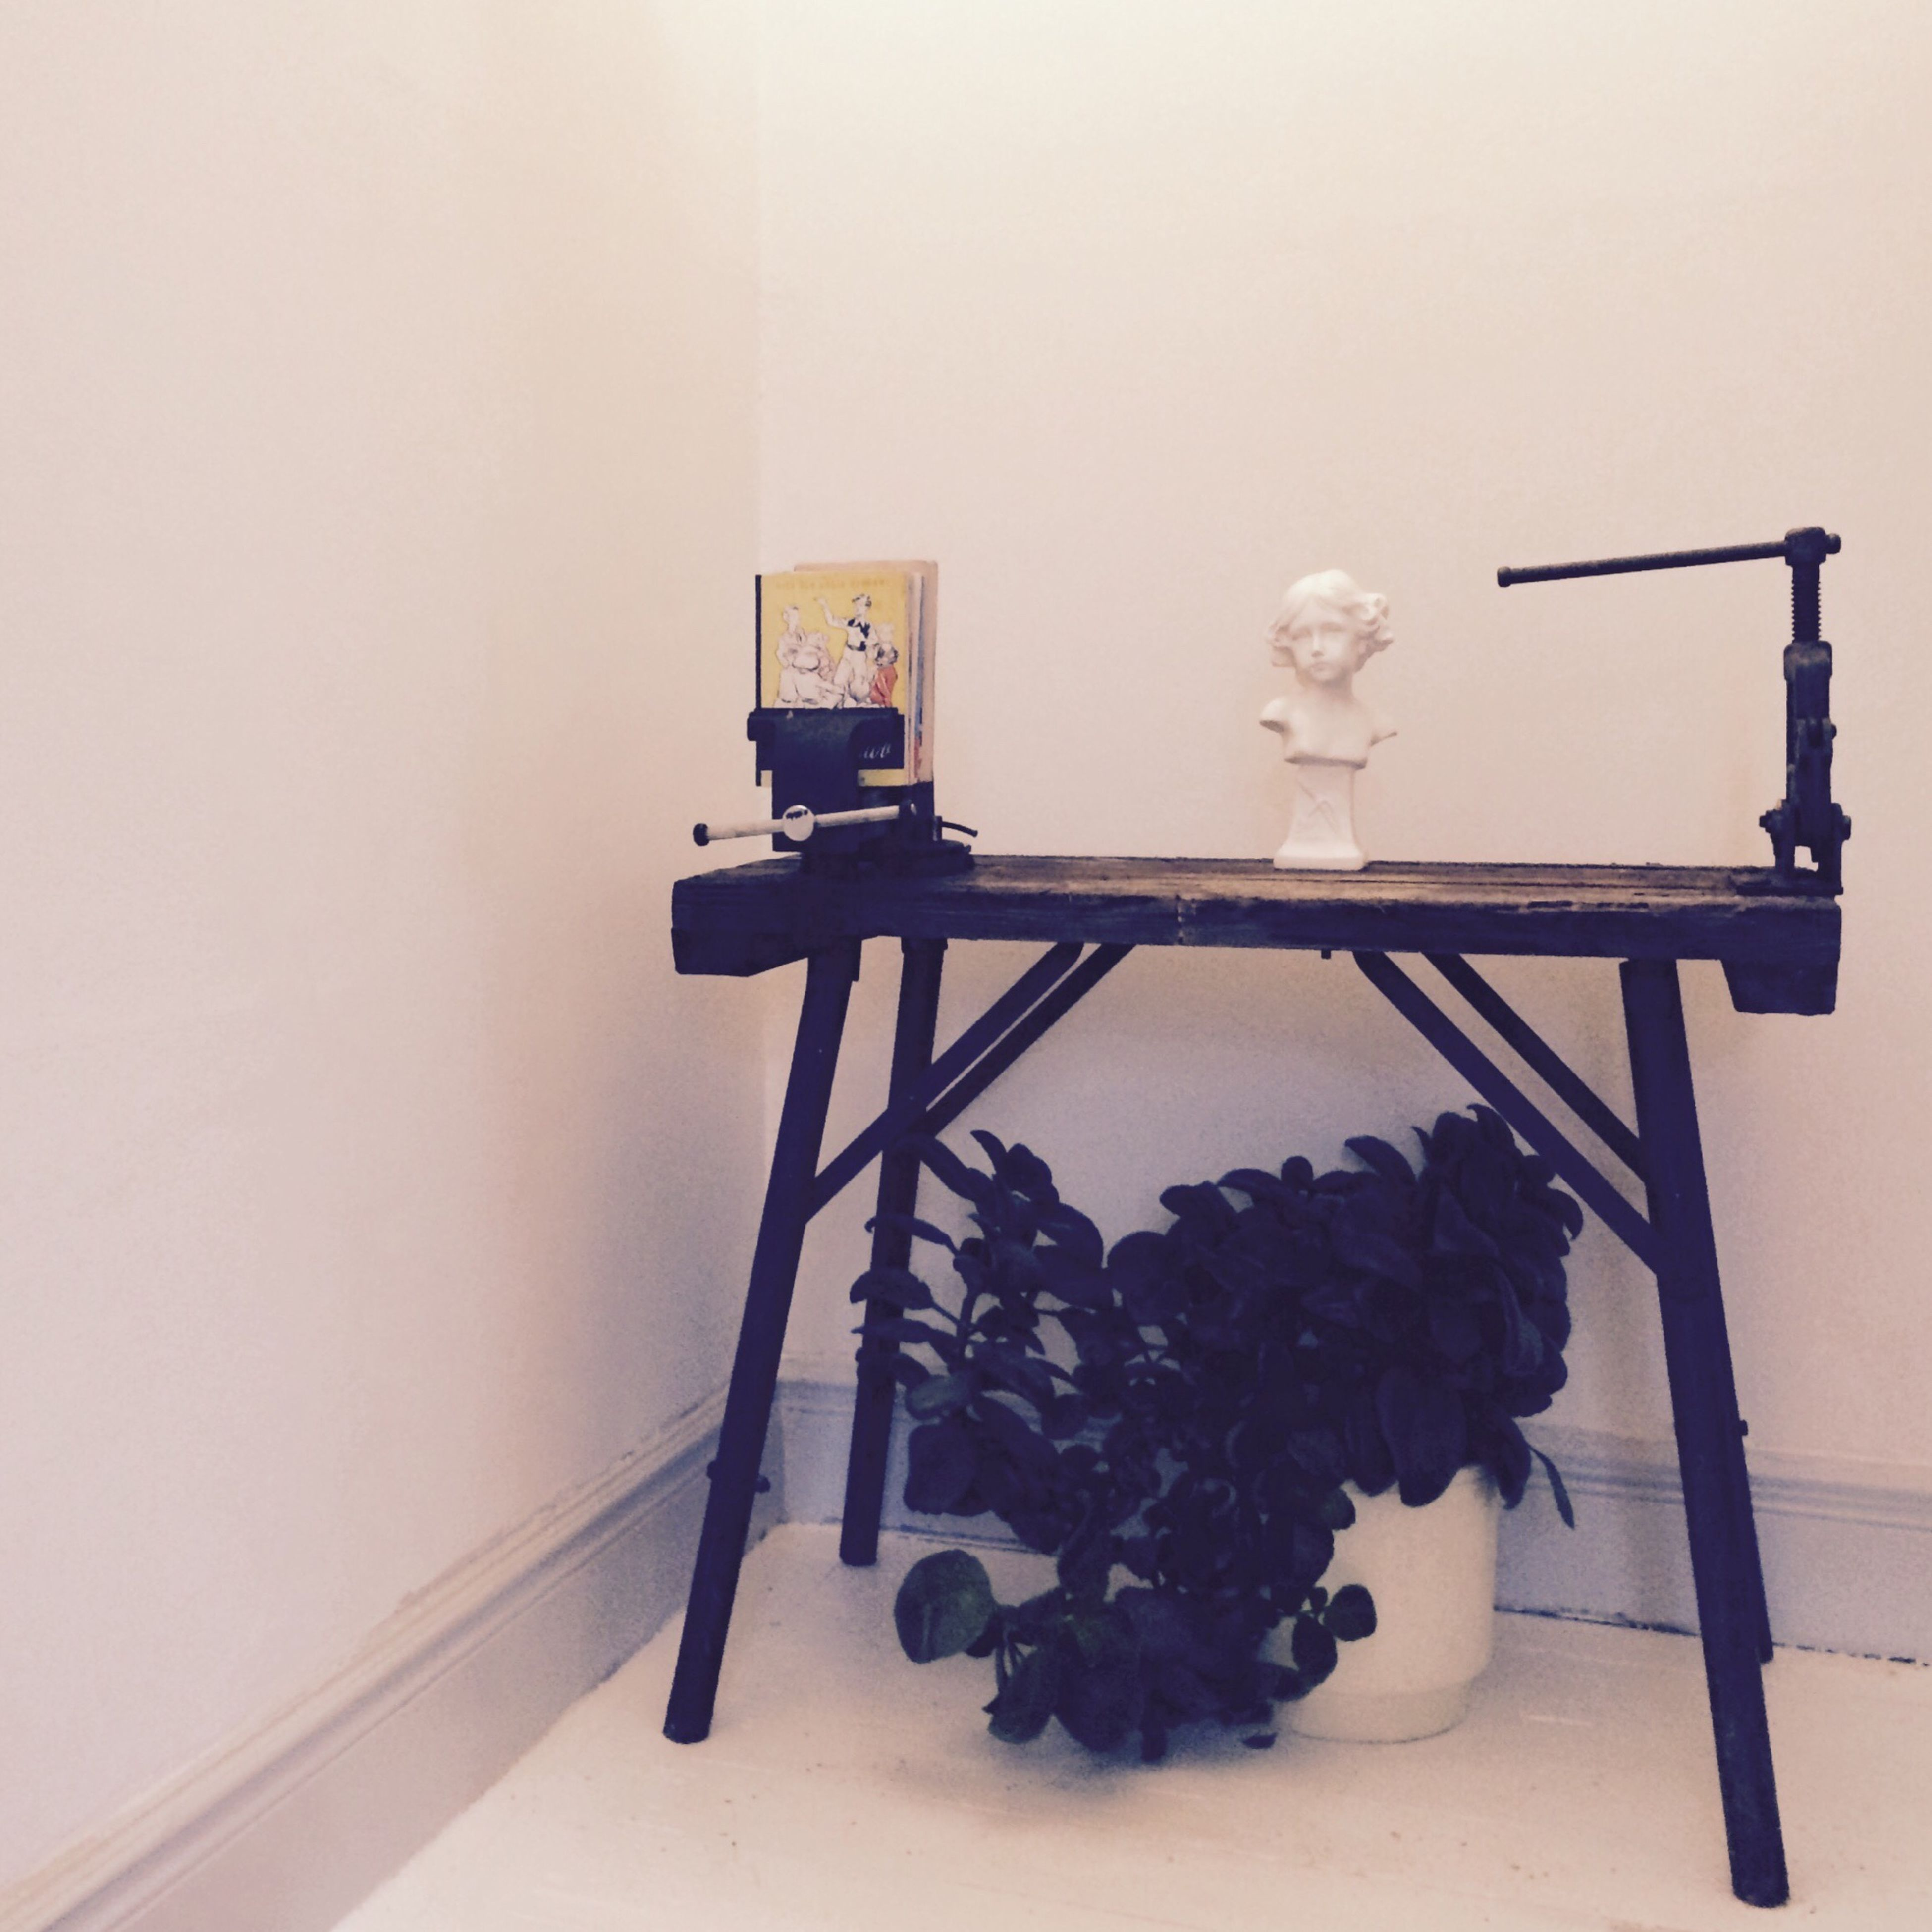 Check This Out Working Bench Instalation Make It Yourself Taking Photos Home Sweet Home EyeEm Gallery Flowers Bust  Books Corners